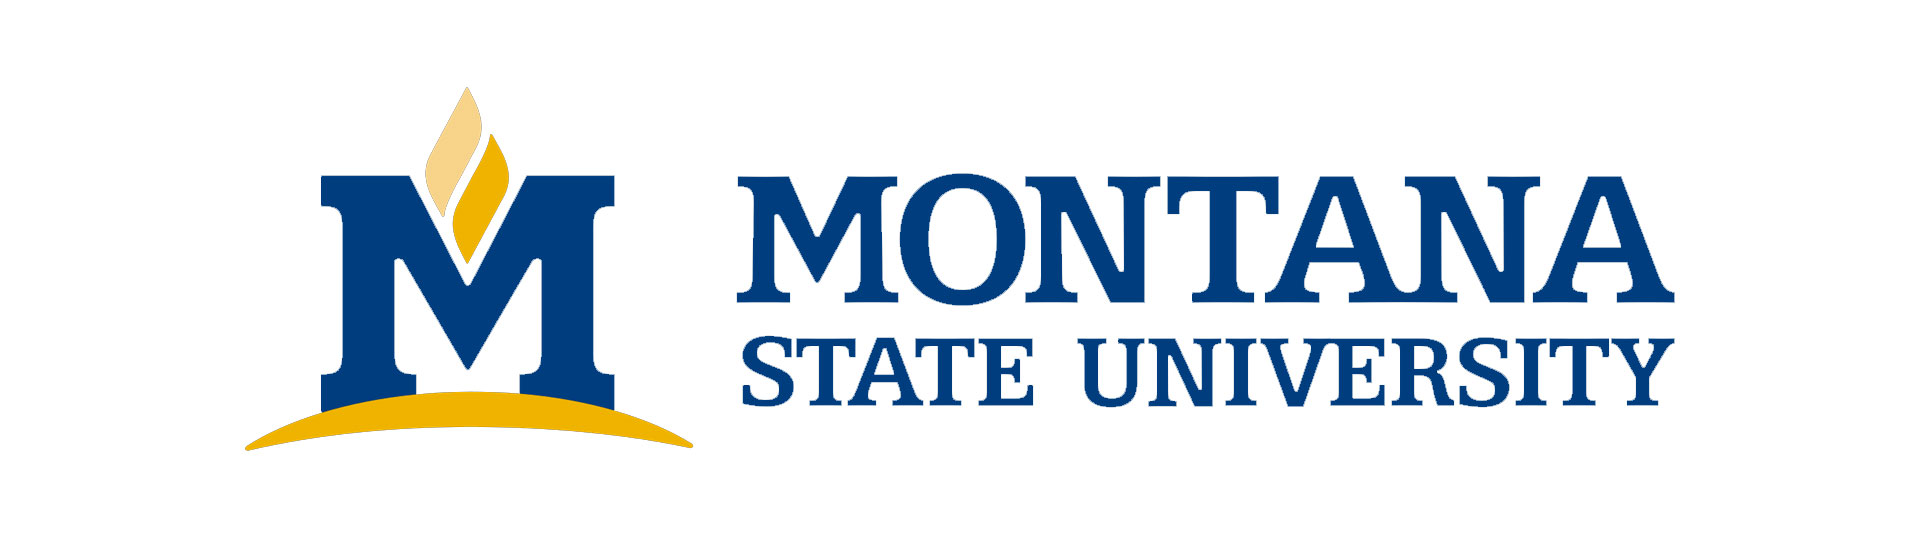 Image for Montana State University